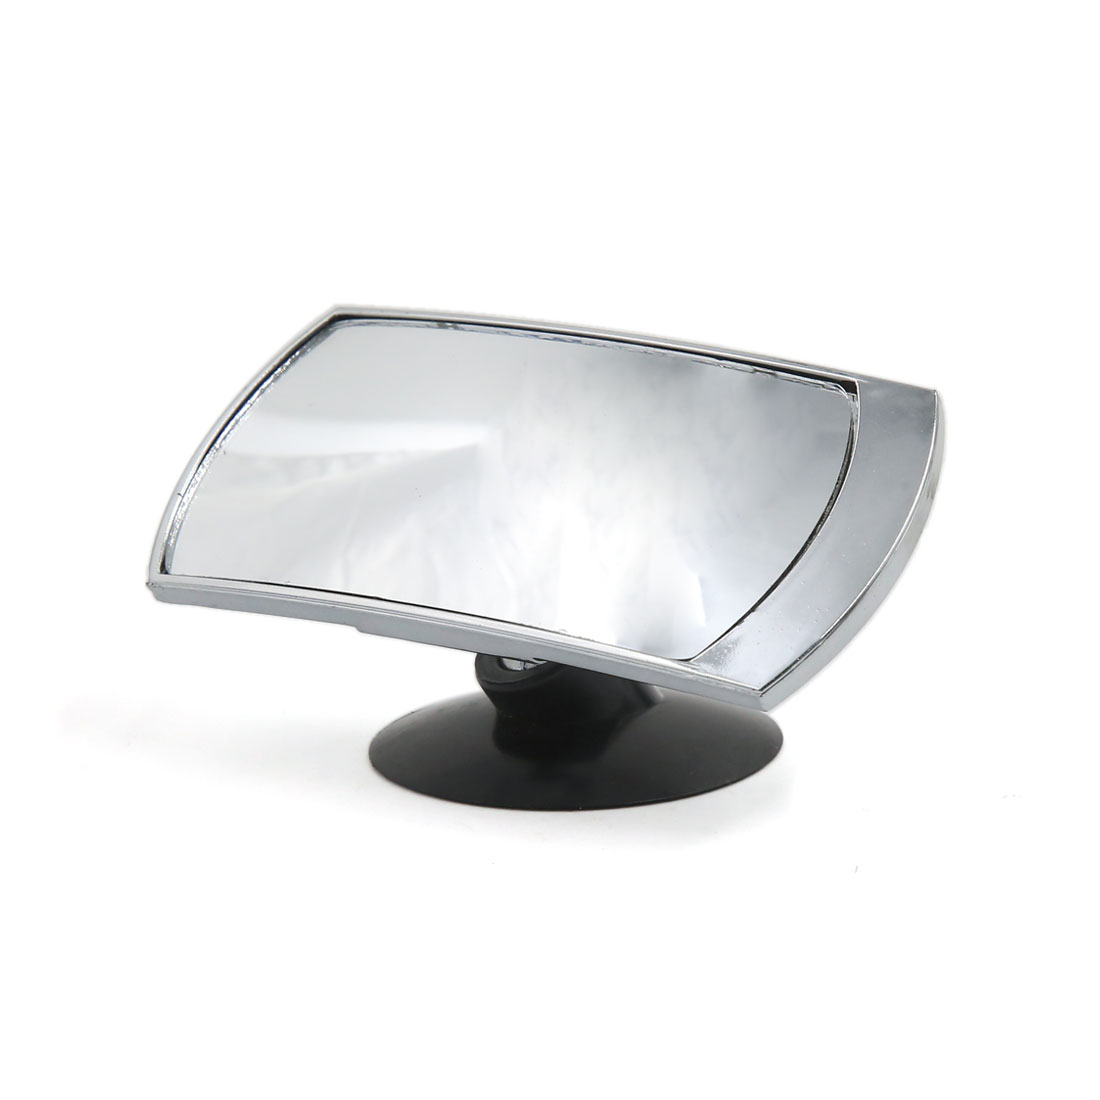 Vehicle Car Blind Spot Free Angle Convex Interior Rear View Mirror Sliver Tone